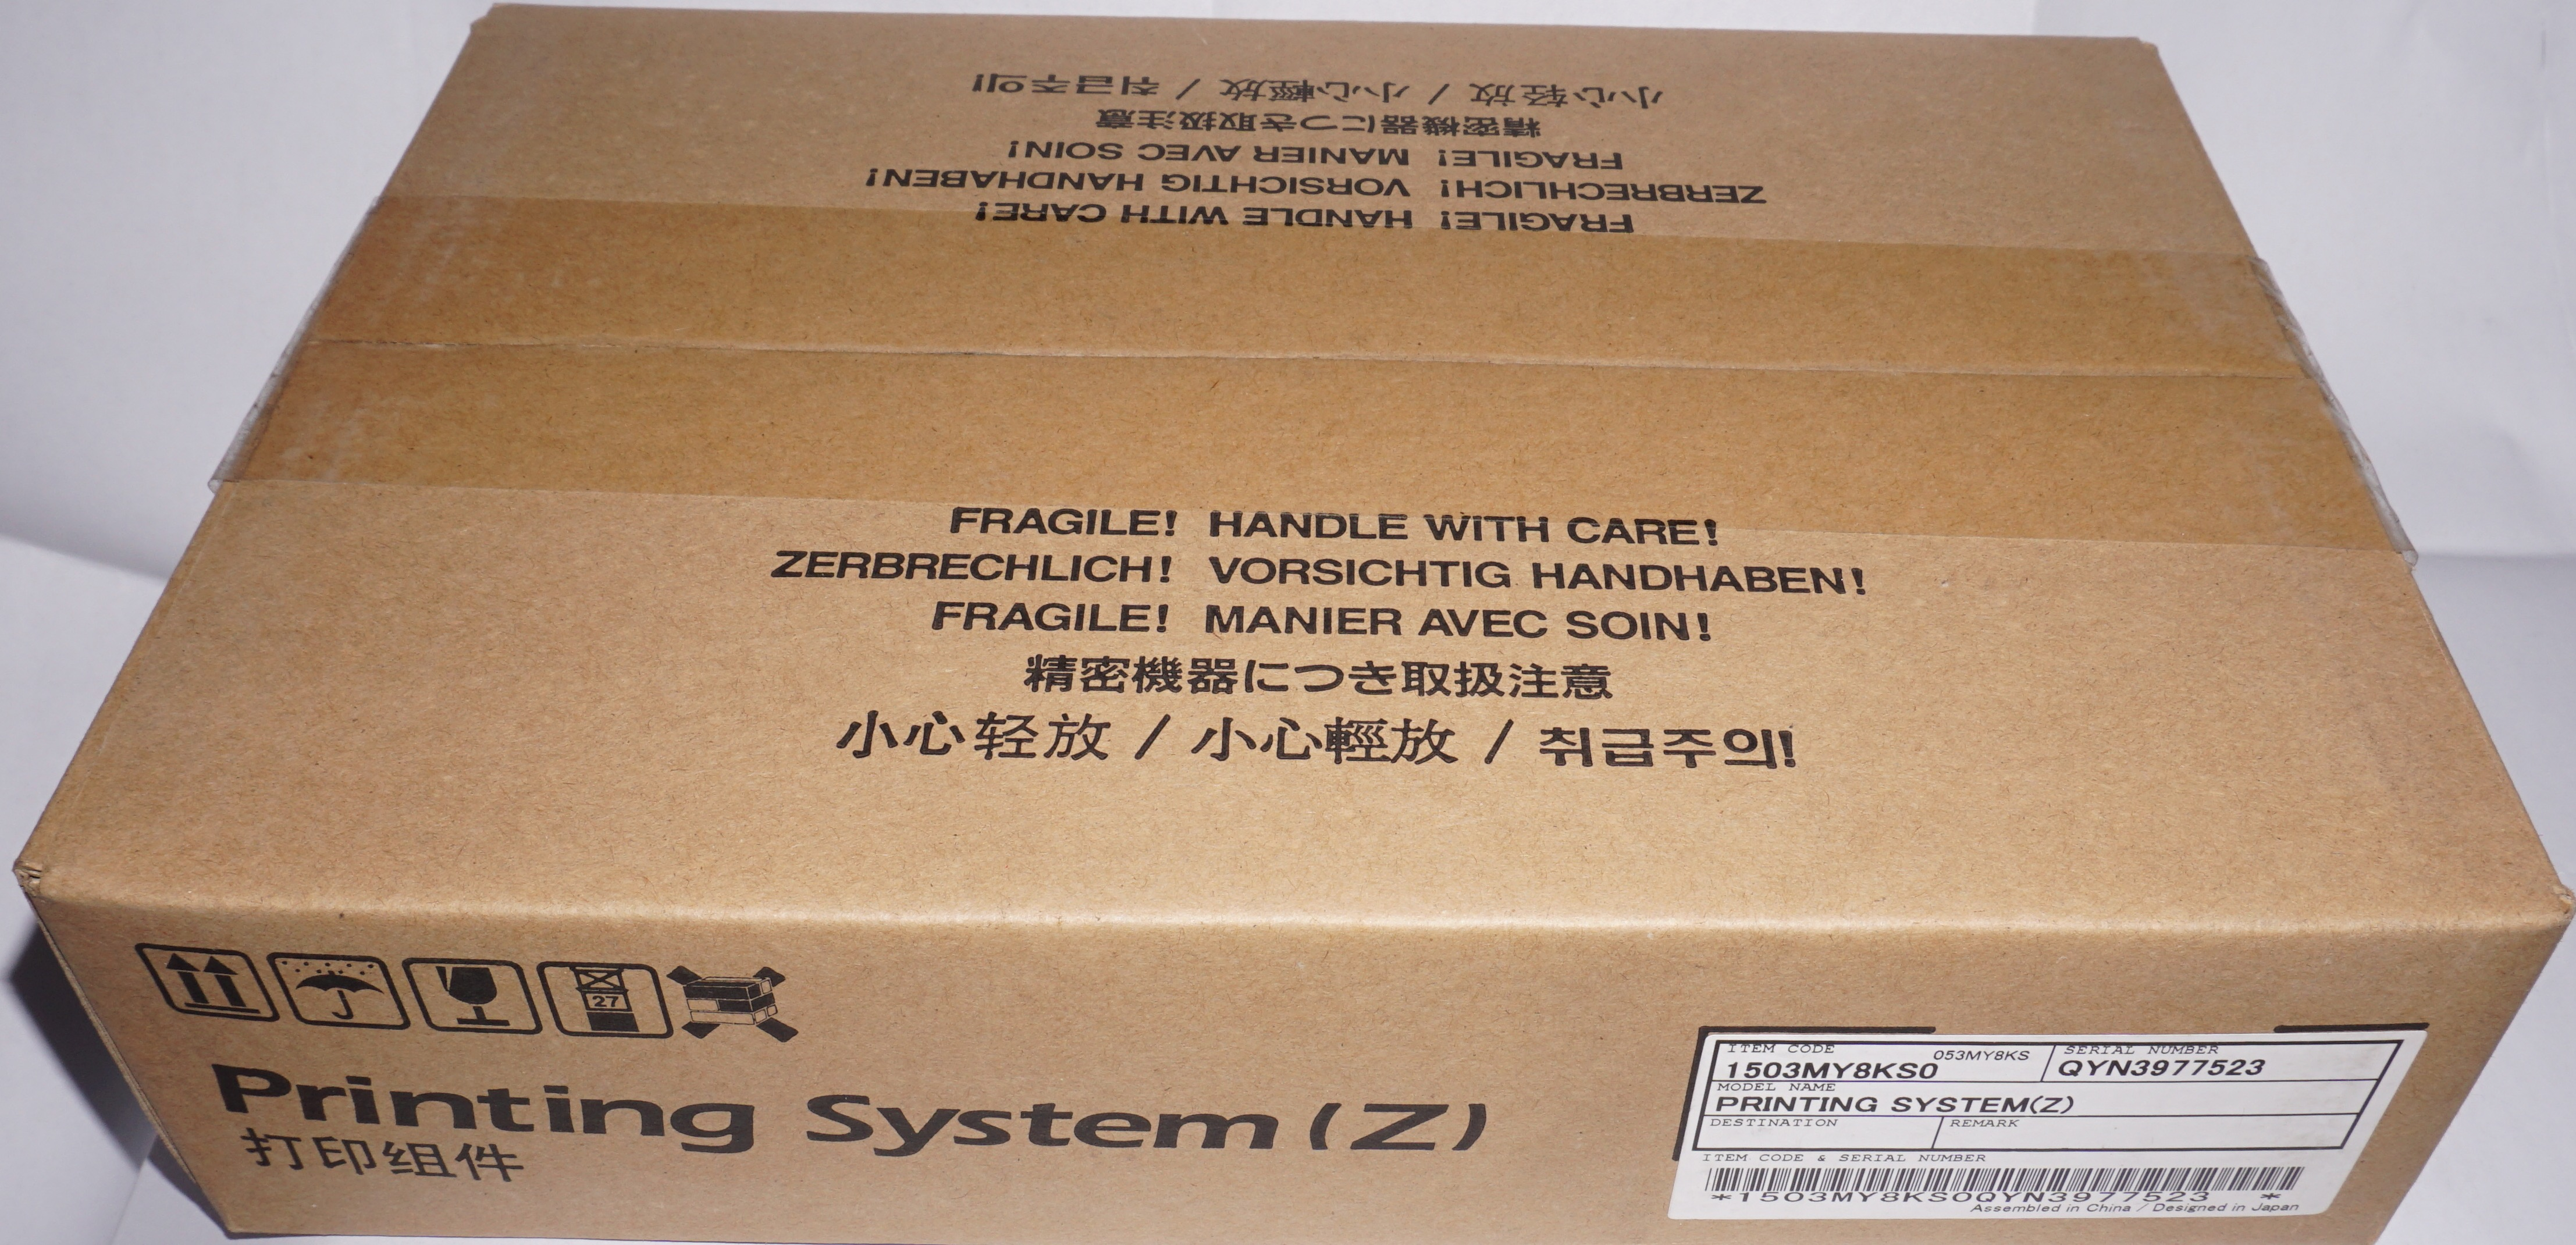 New Original Kyocera 1503MY0UN0 Print System(Z) for:TASKalfa 180 220New Original Kyocera 1503MY0UN0 Print System(Z) for:TASKalfa 180 220